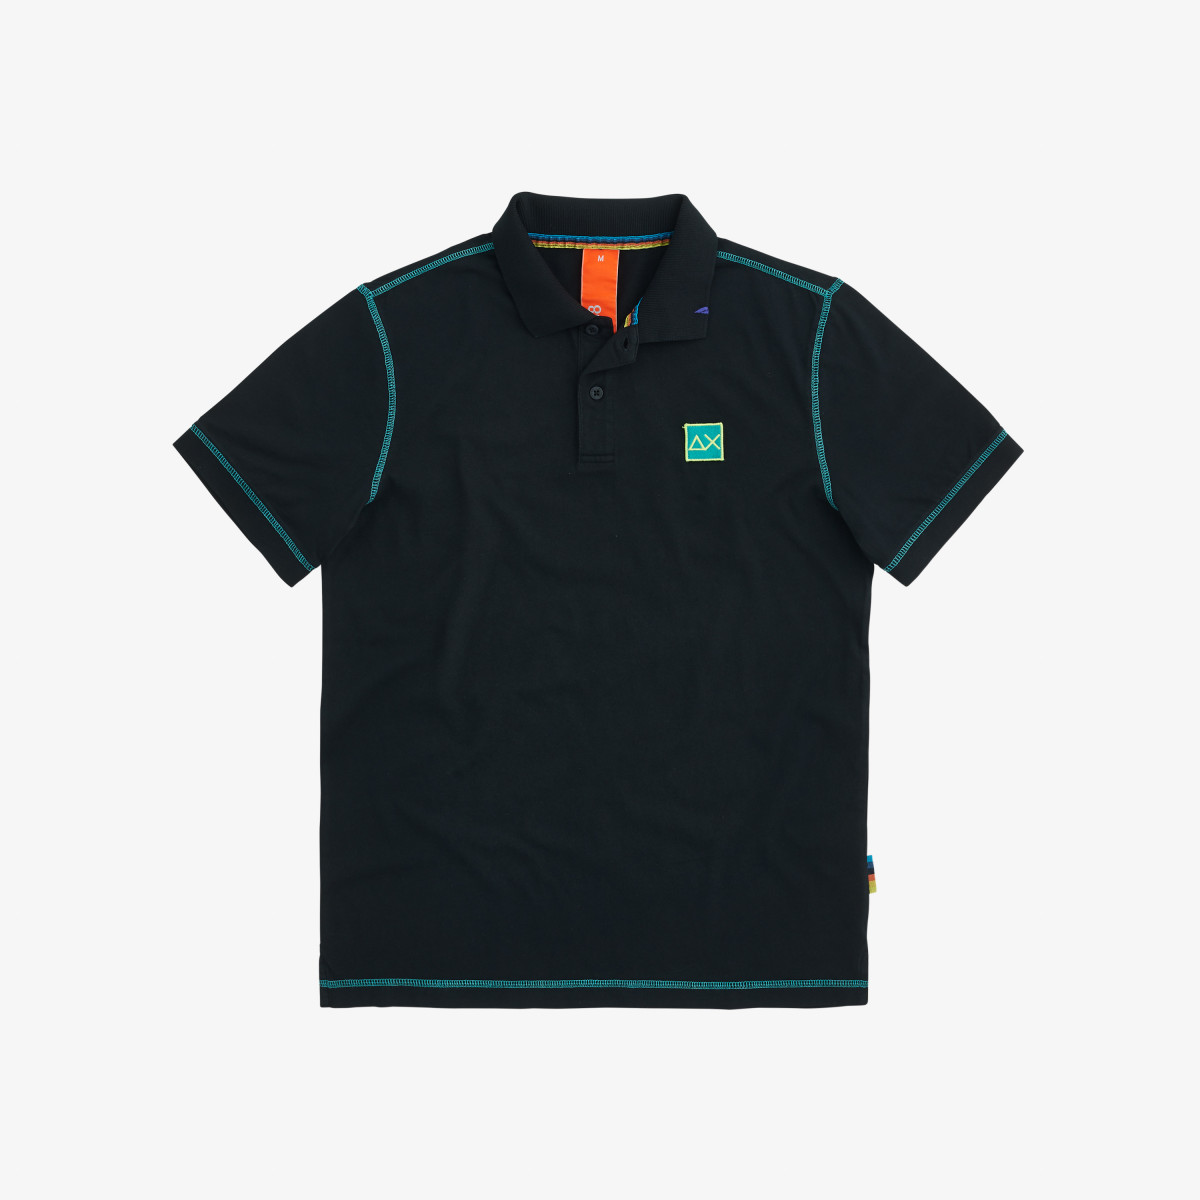 POLO COLD DYE CONTRAST STITCHING INCHIOSTRO